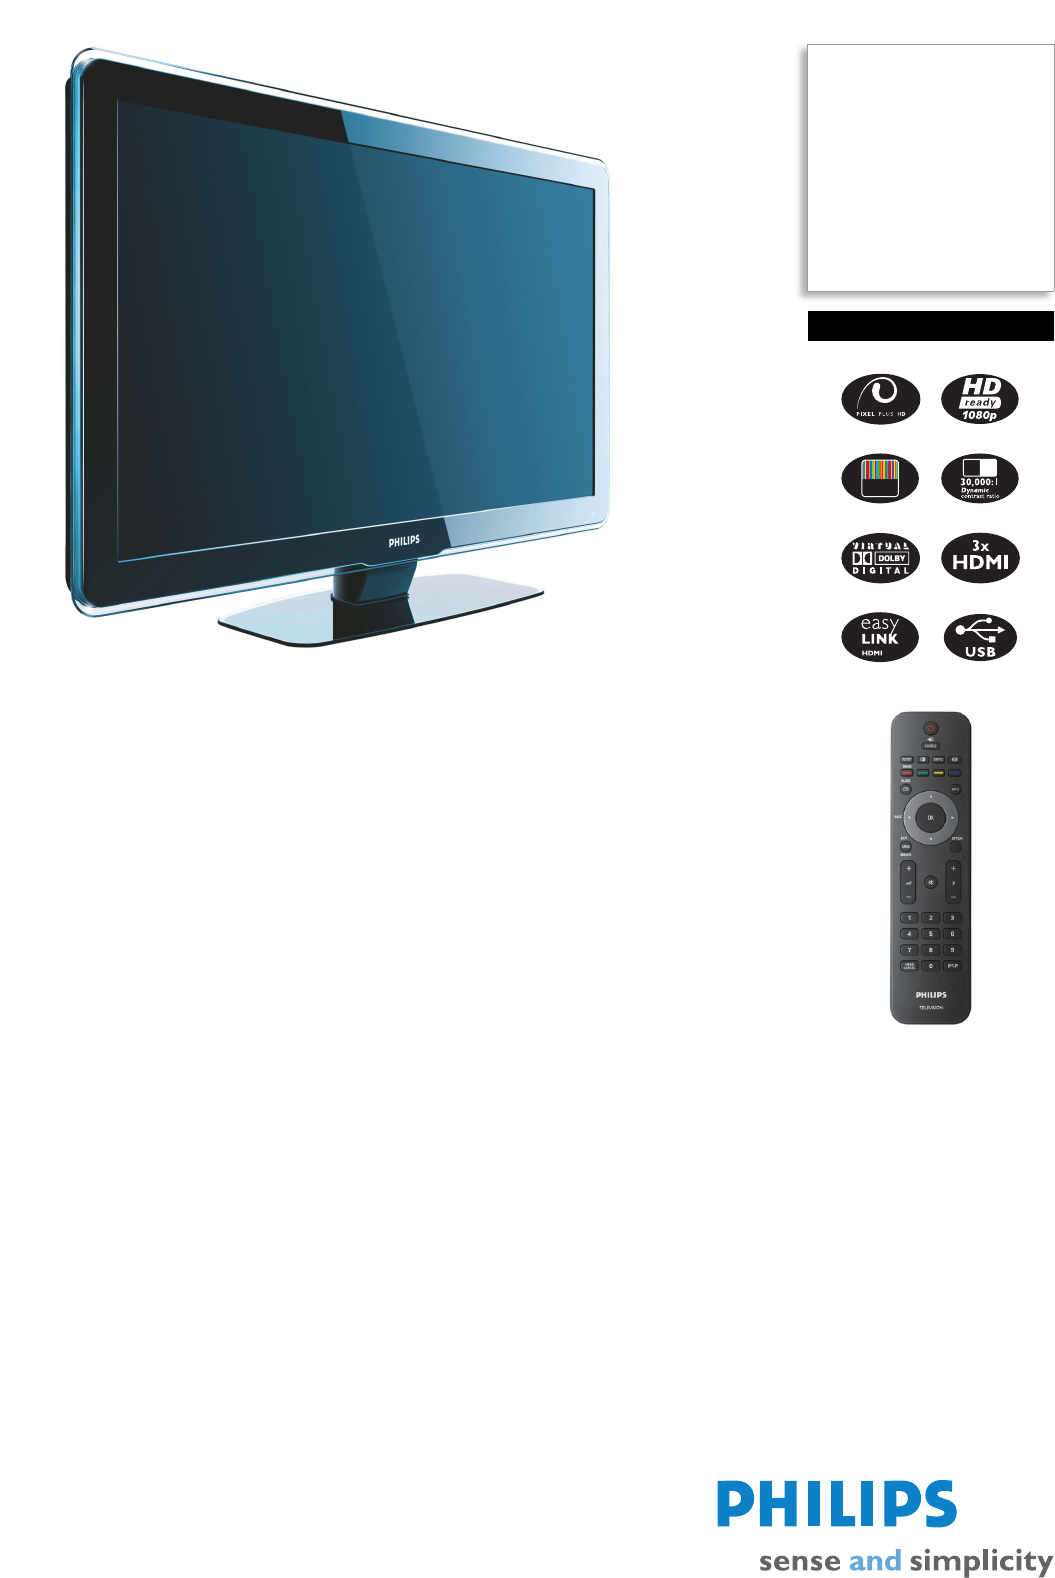 Philips Flat Panel Television 47PFL5603H User Guide | ManualsOnline com